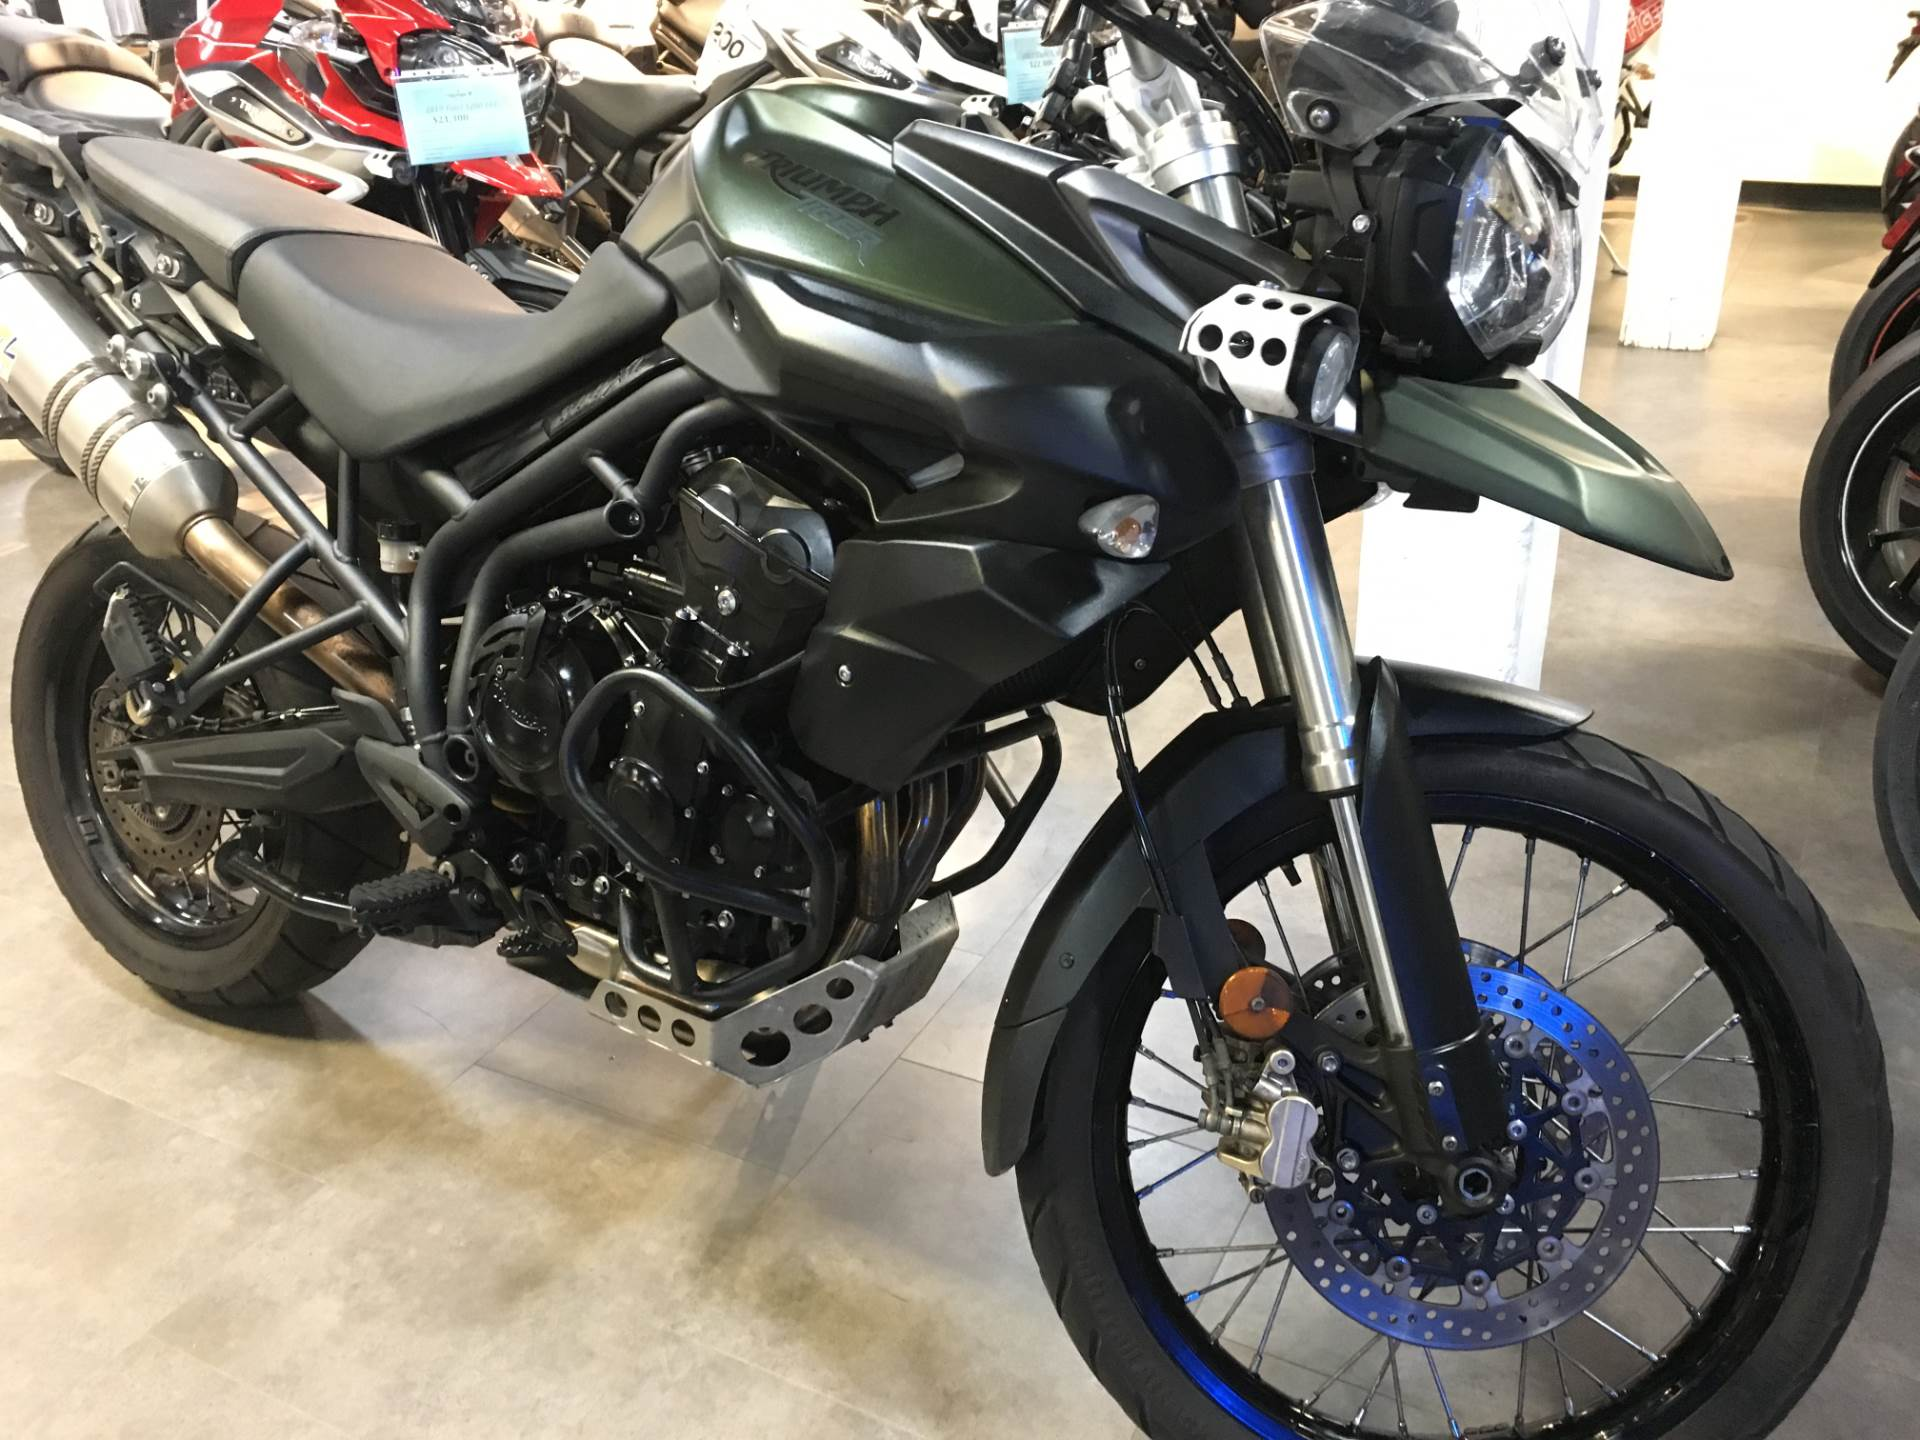 2014 Triumph Tiger 800 XC ABS in Philadelphia, Pennsylvania